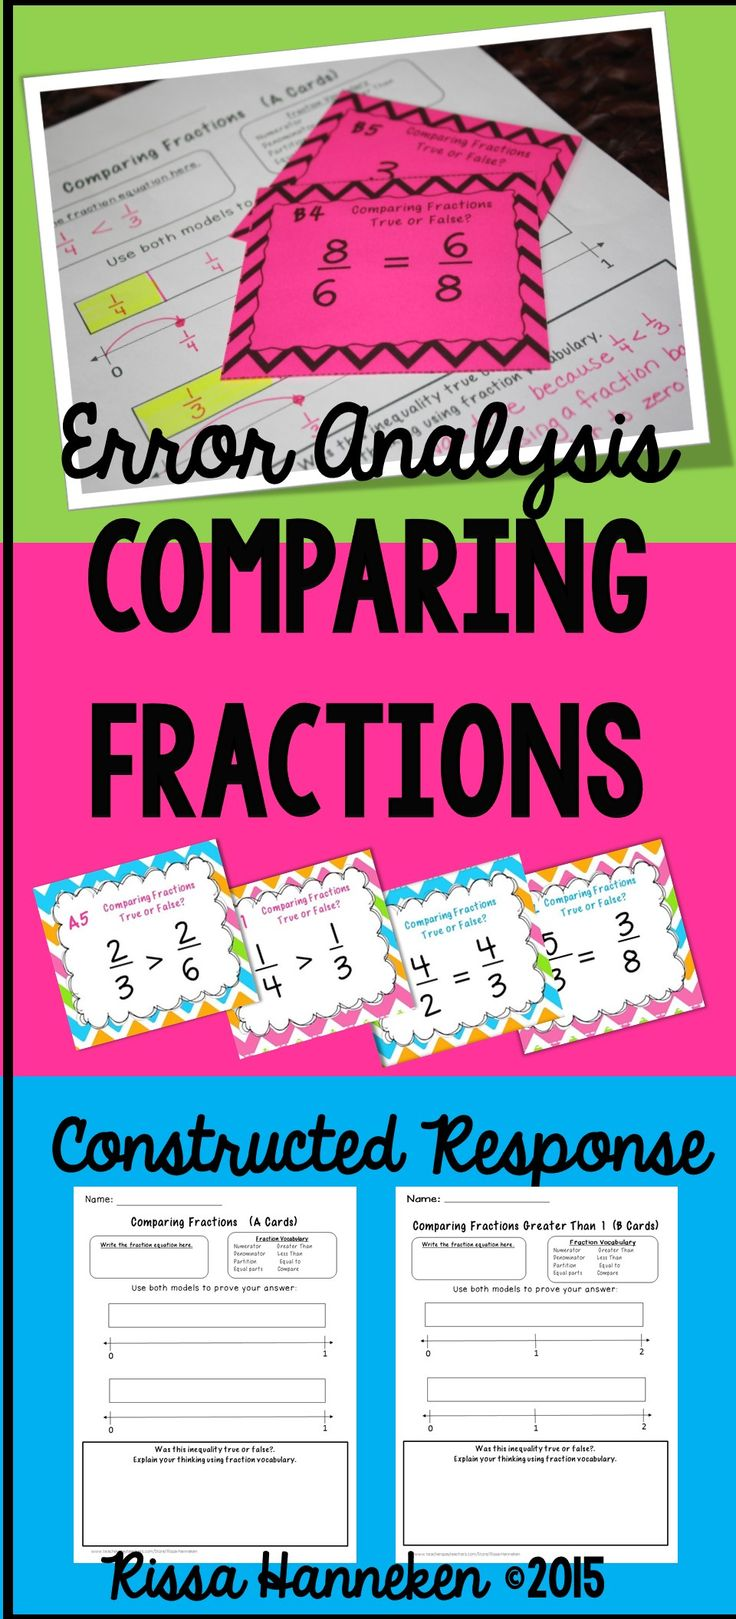 worksheet Constructed Travel Cost-comparison Worksheet 1000 images about fractions on pinterest math student and 5th students will use error analysis constructed response to compare in this h o t center